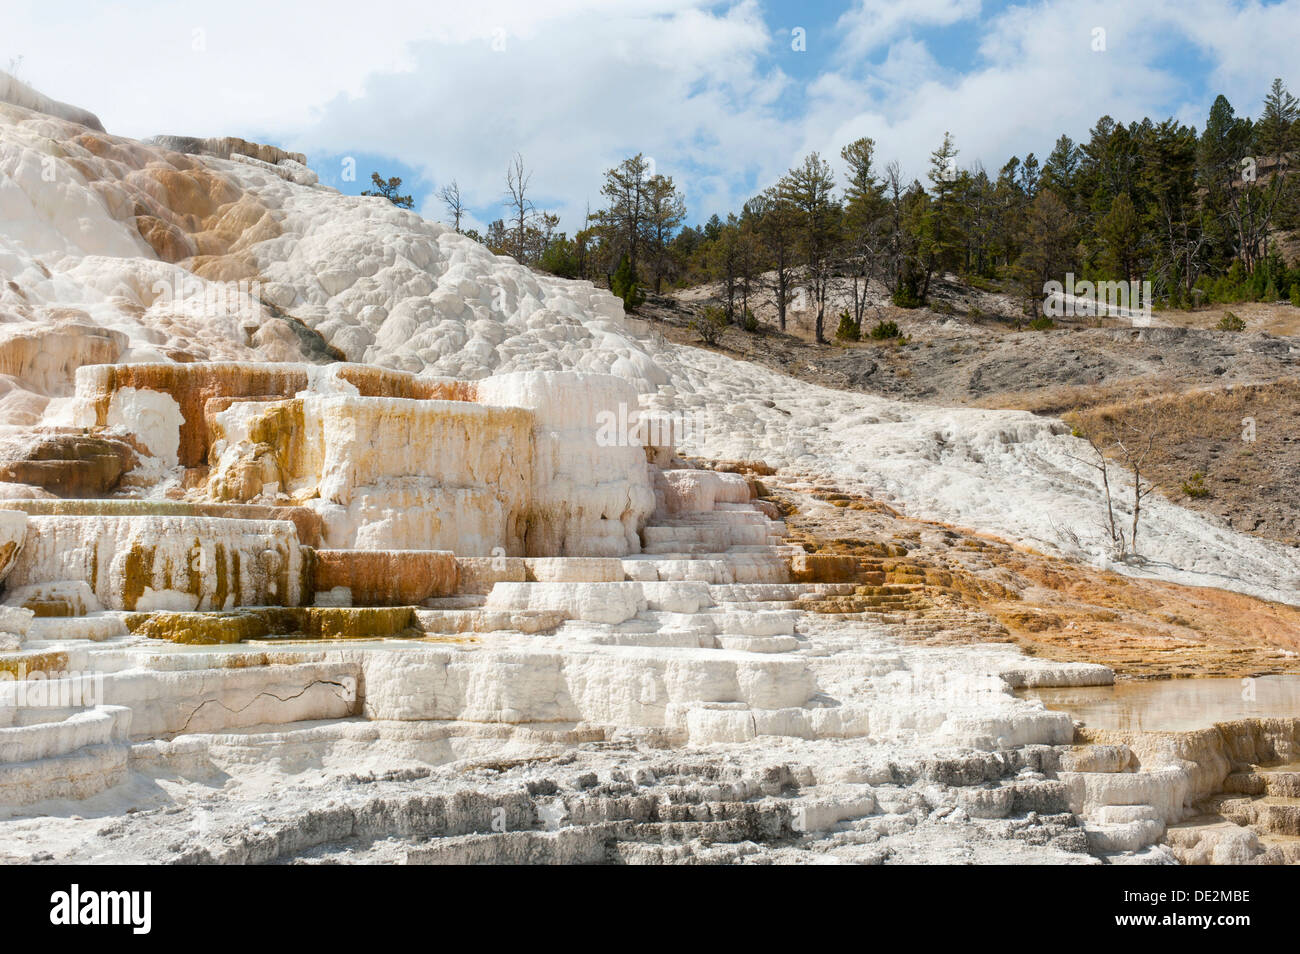 Geomorphology, white and yellow limestone sinter terraces, Palette Spring, Mammoth Hot Springs, Yellowstone National Park - Stock Image